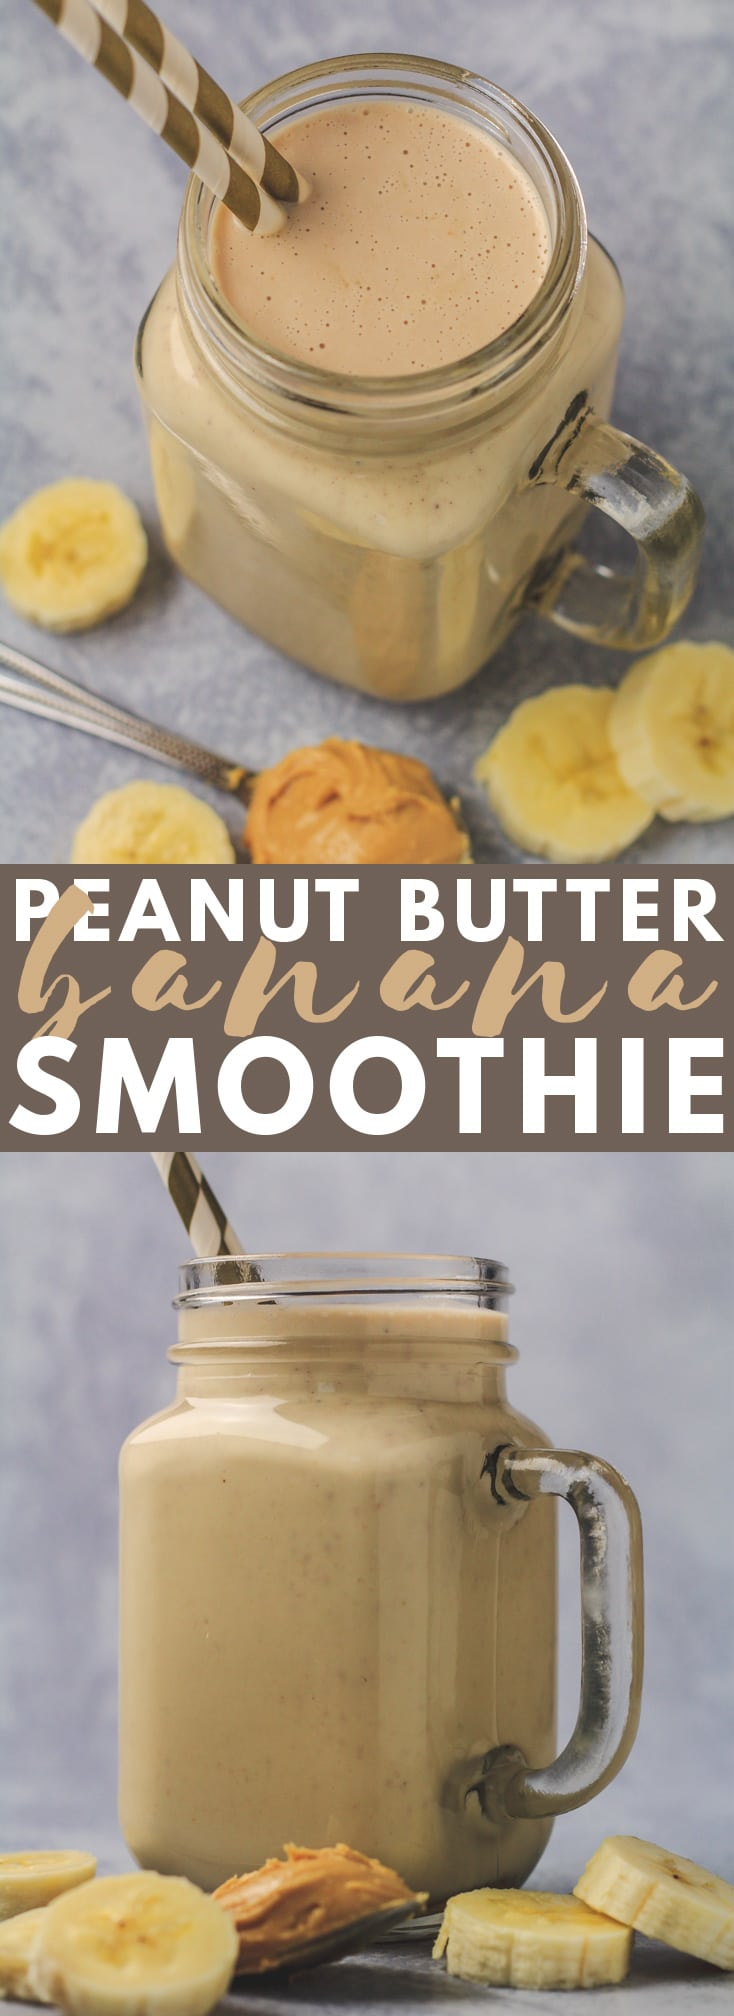 Peanut Butter Banana Smoothie - A deliciously thick and creamy banana smoothie that is loaded with peanut butter flavour. The most perfect indulgent smoothie to have for breakfast or a snack!